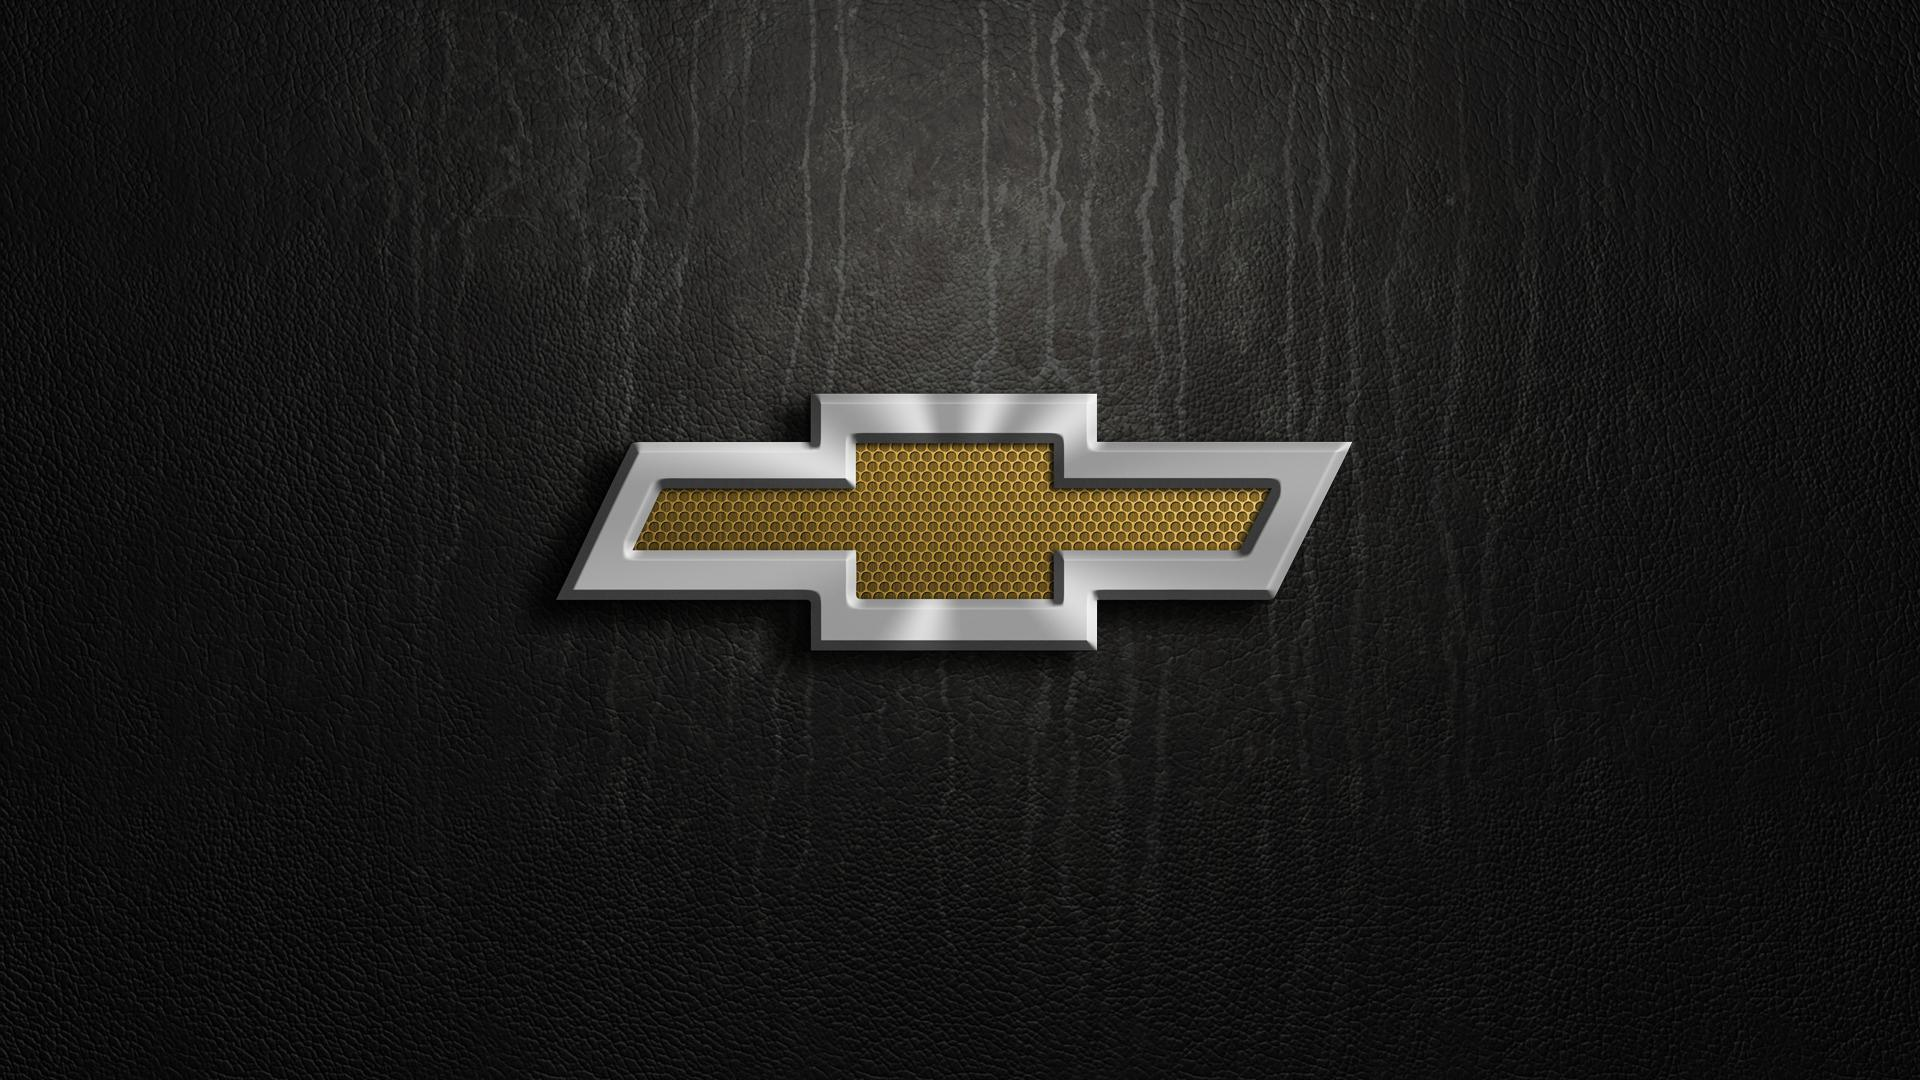 Chevy Backgrounds - Wallpaper Cave